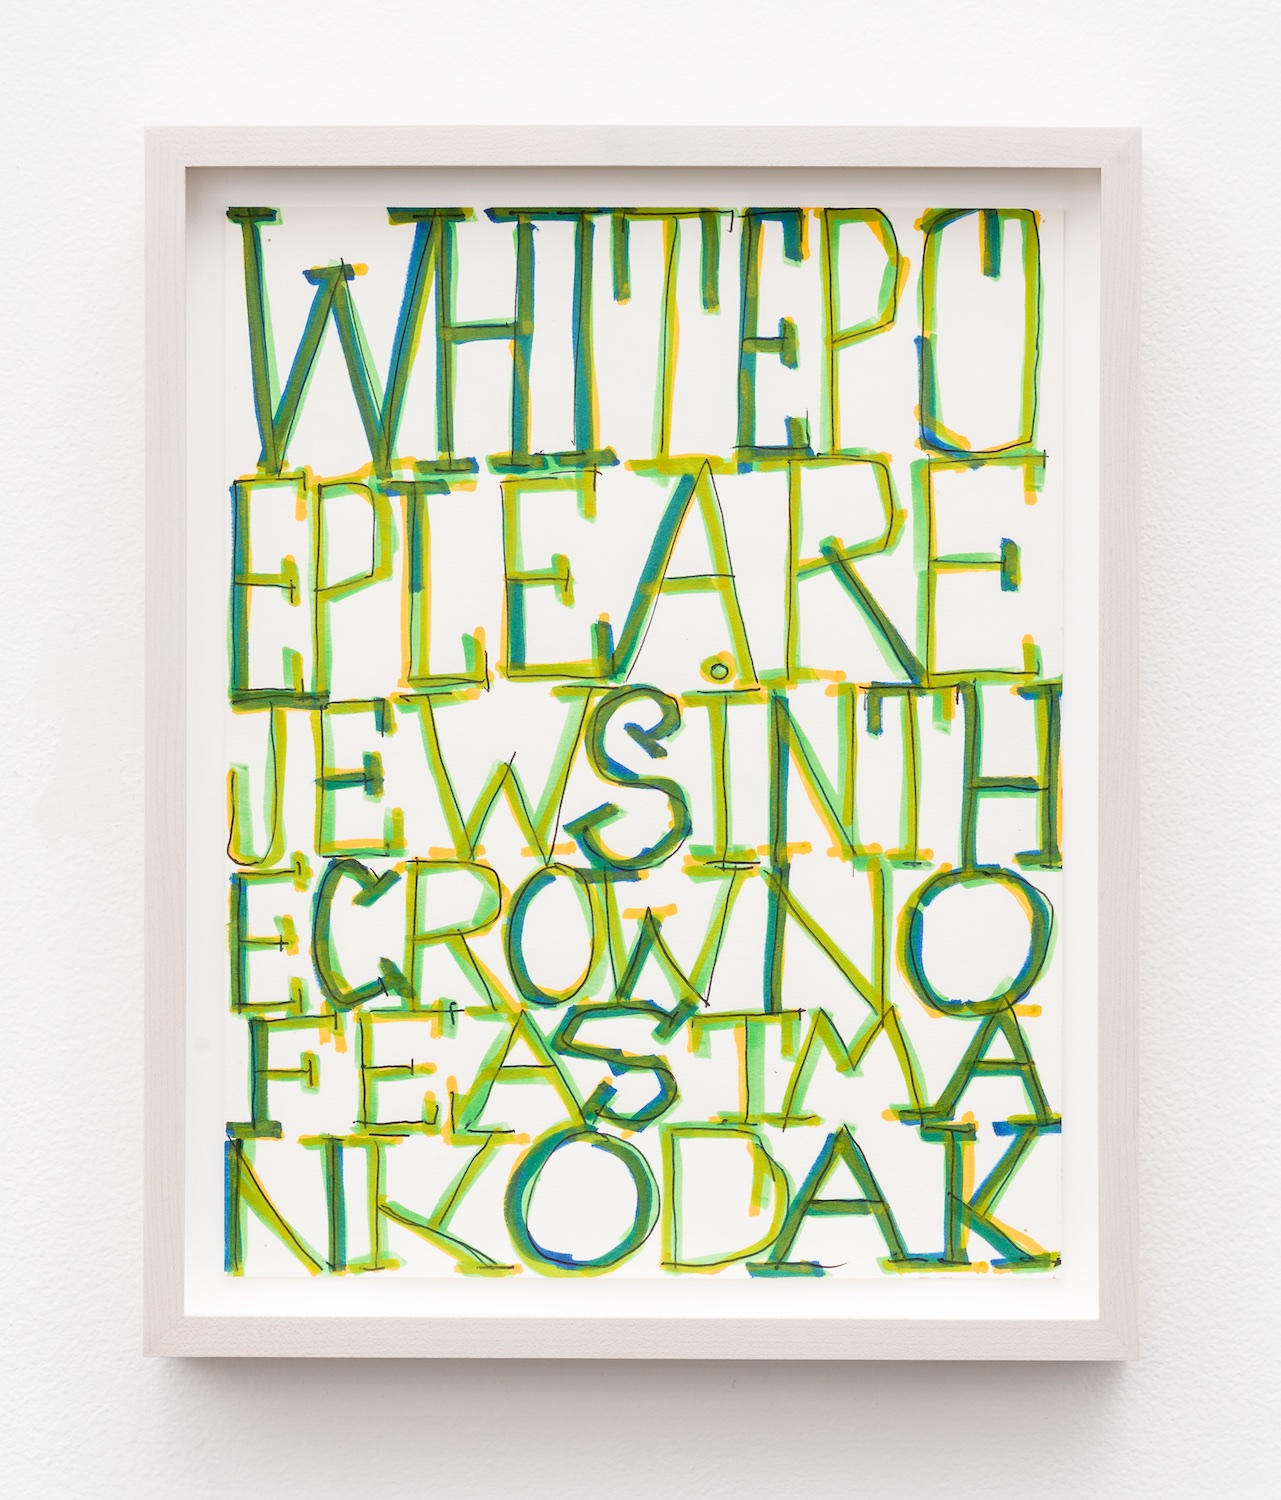 William Pope.L  White Poeple Are Jews In The Crown Of Eastman Kodak  2012 Mixed media on paper 11 ½h x 9w in WP007